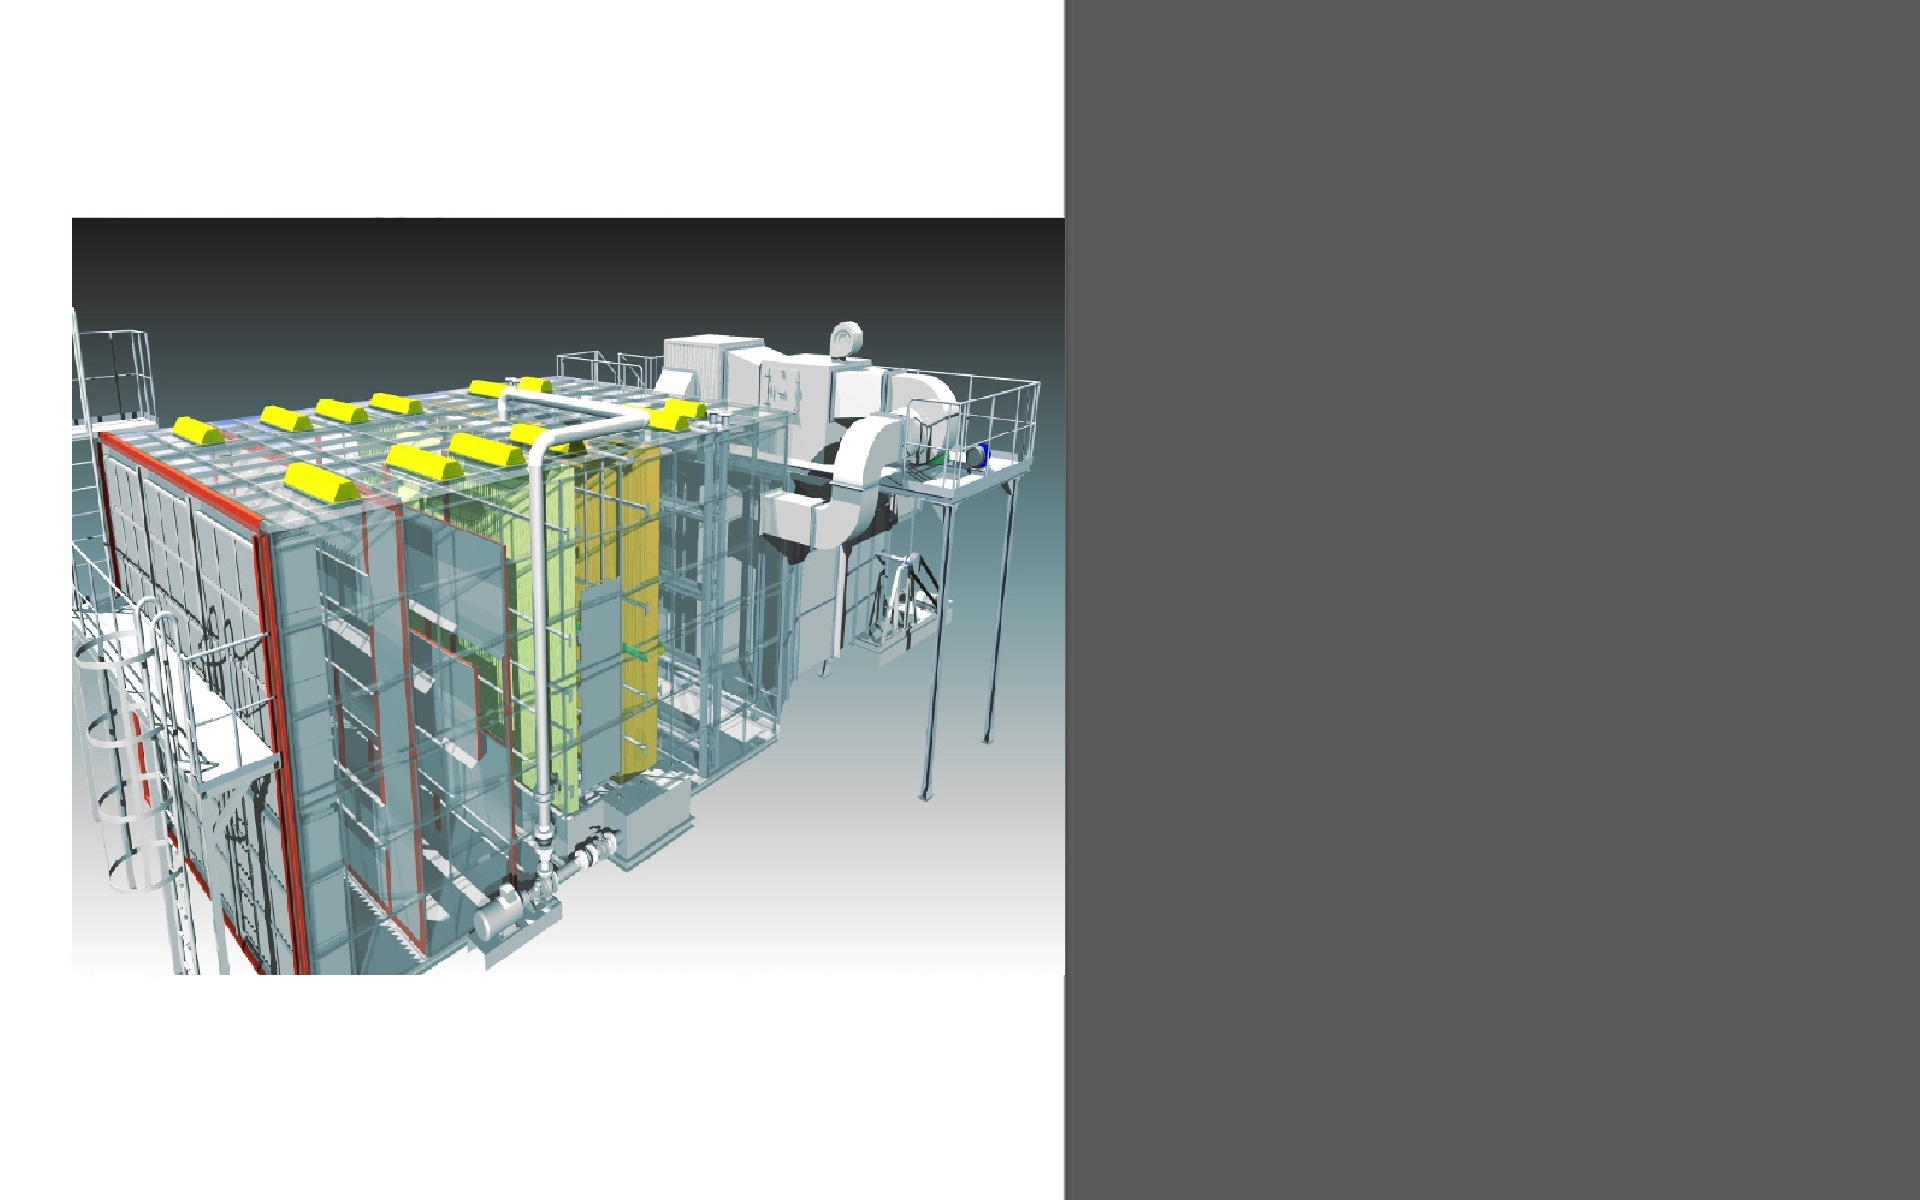 PowerSurety energy resiliency value proposition CAD design in 3-D